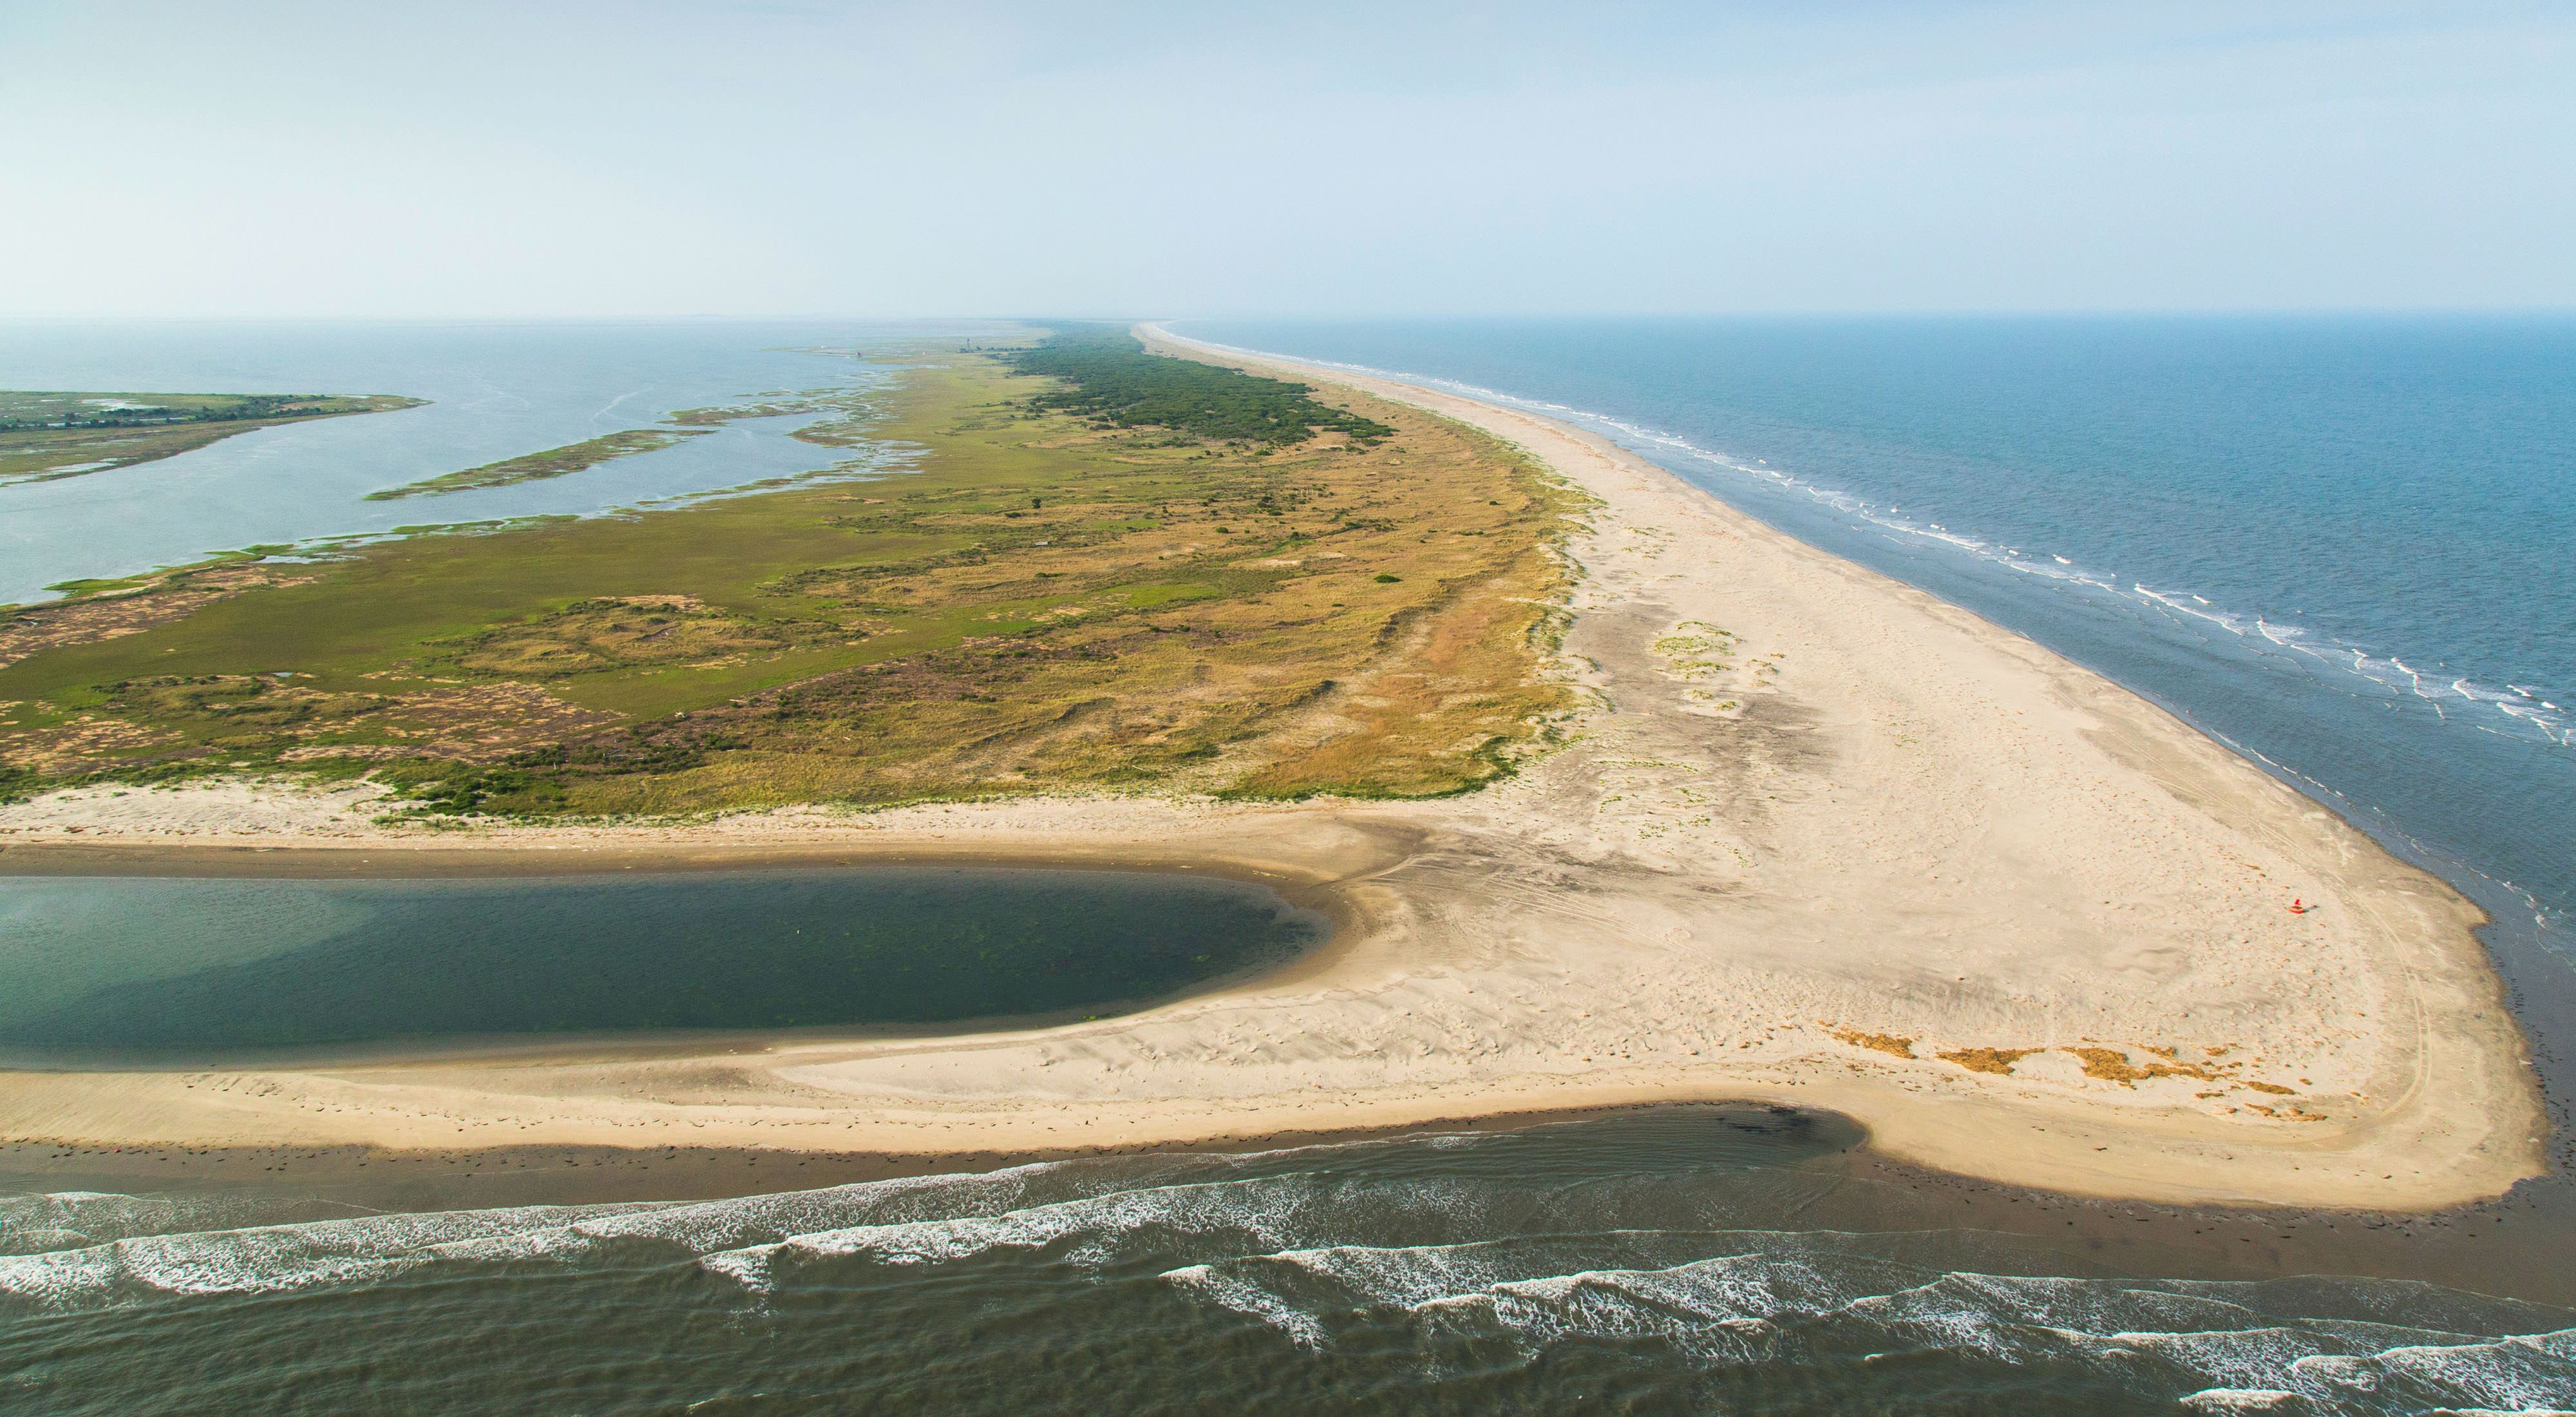 Aerial view of broad stretch of beach on Hog Island, Virginia